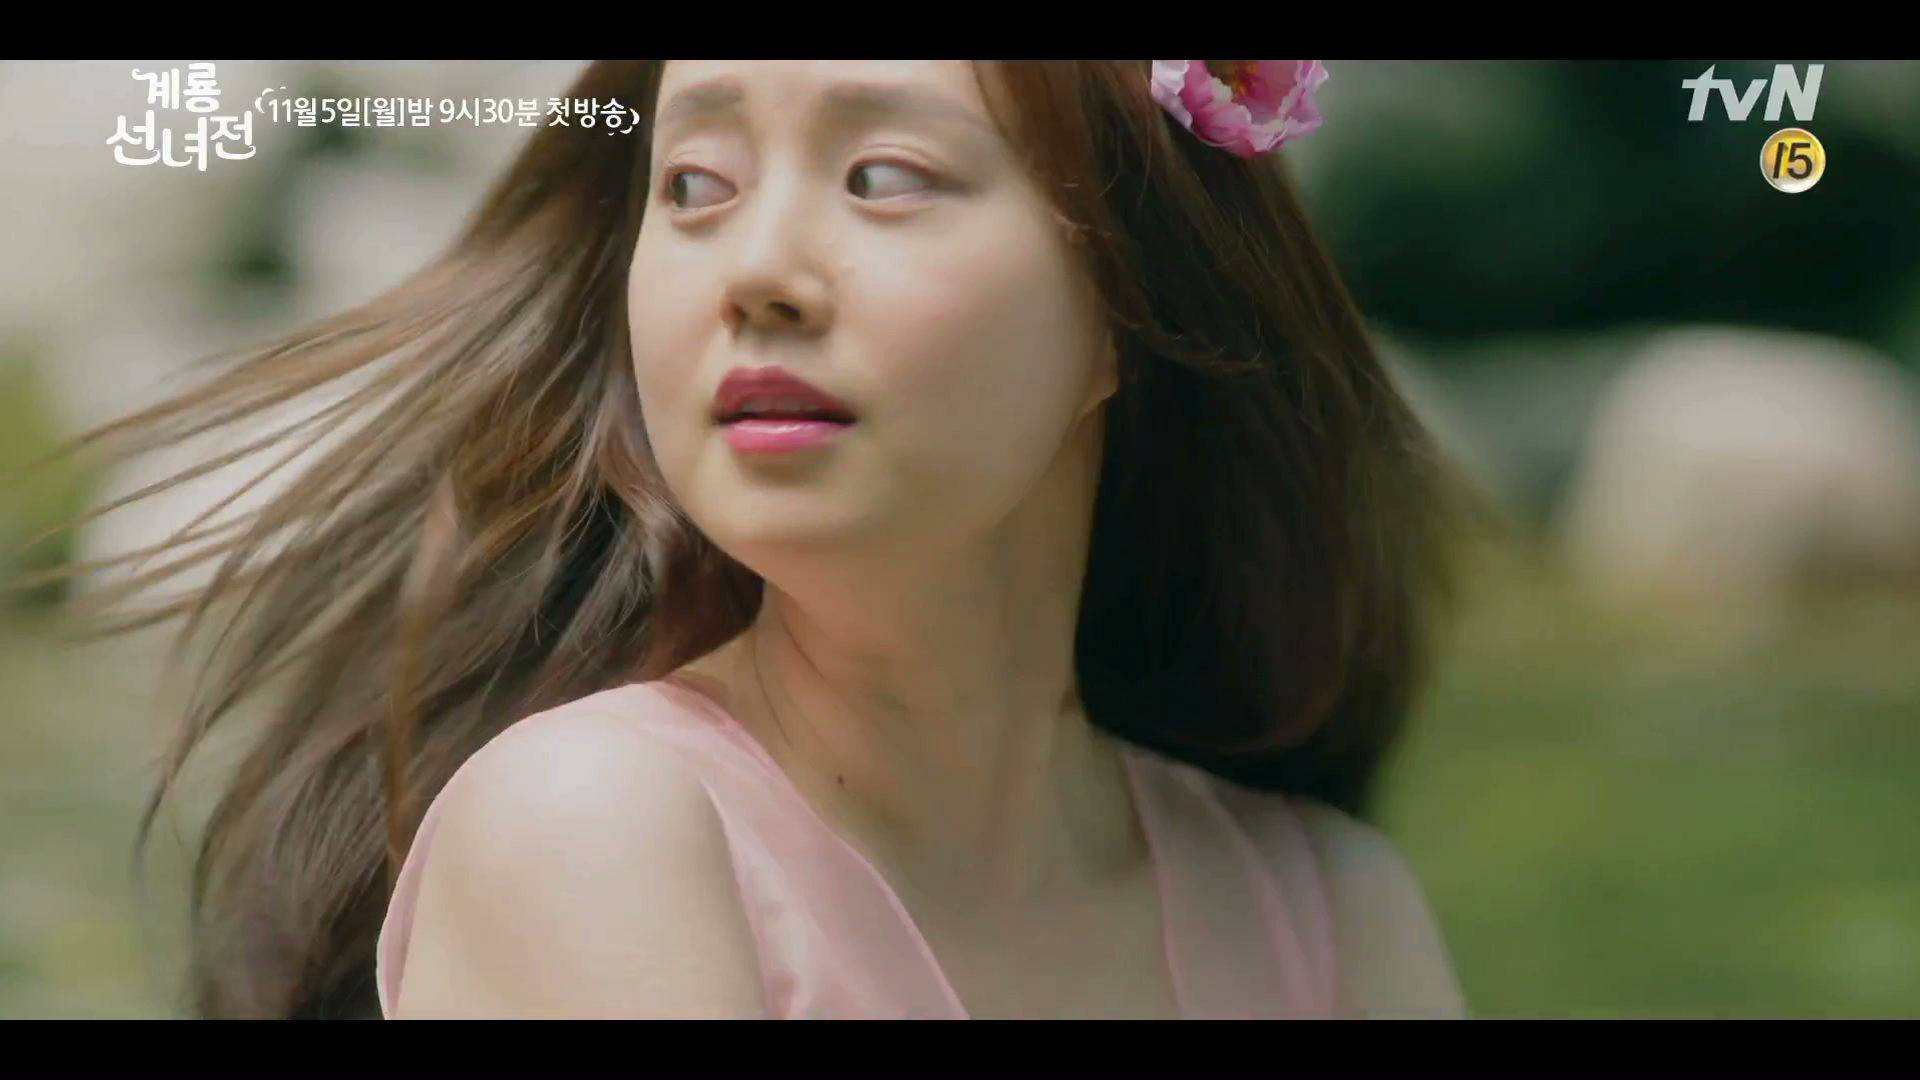 Video] New Teasers Released for the Upcoming Korean Drama